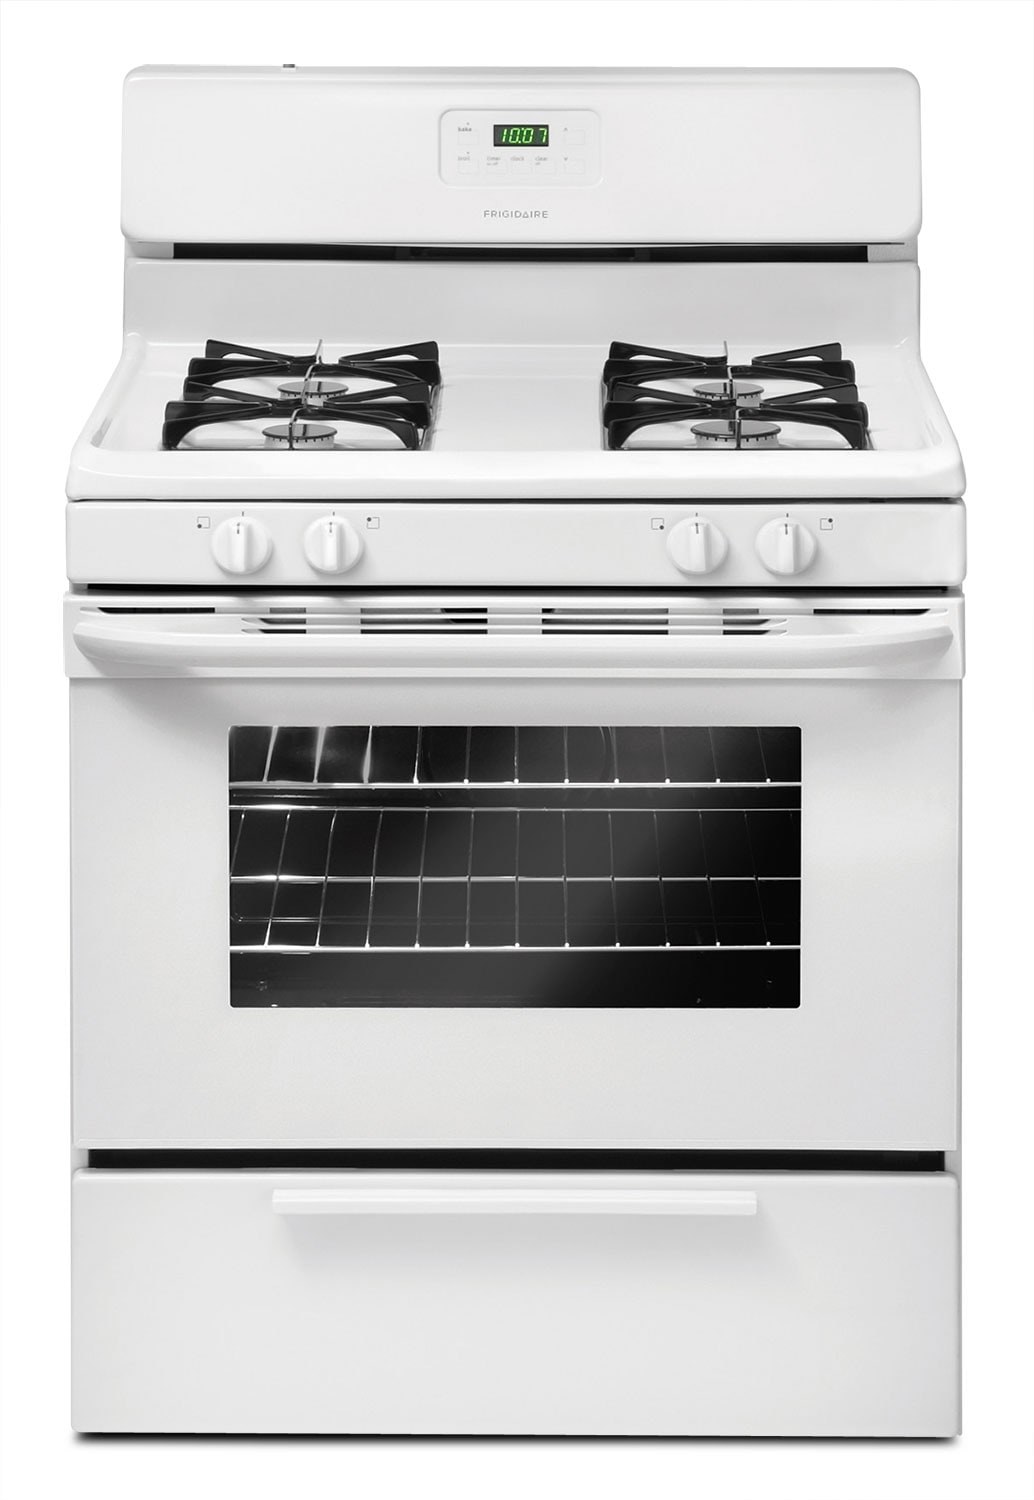 Cooking Products - Frigidaire White Freestanding Gas Range (4.2 Cu. Ft.) - CFGF3017LW